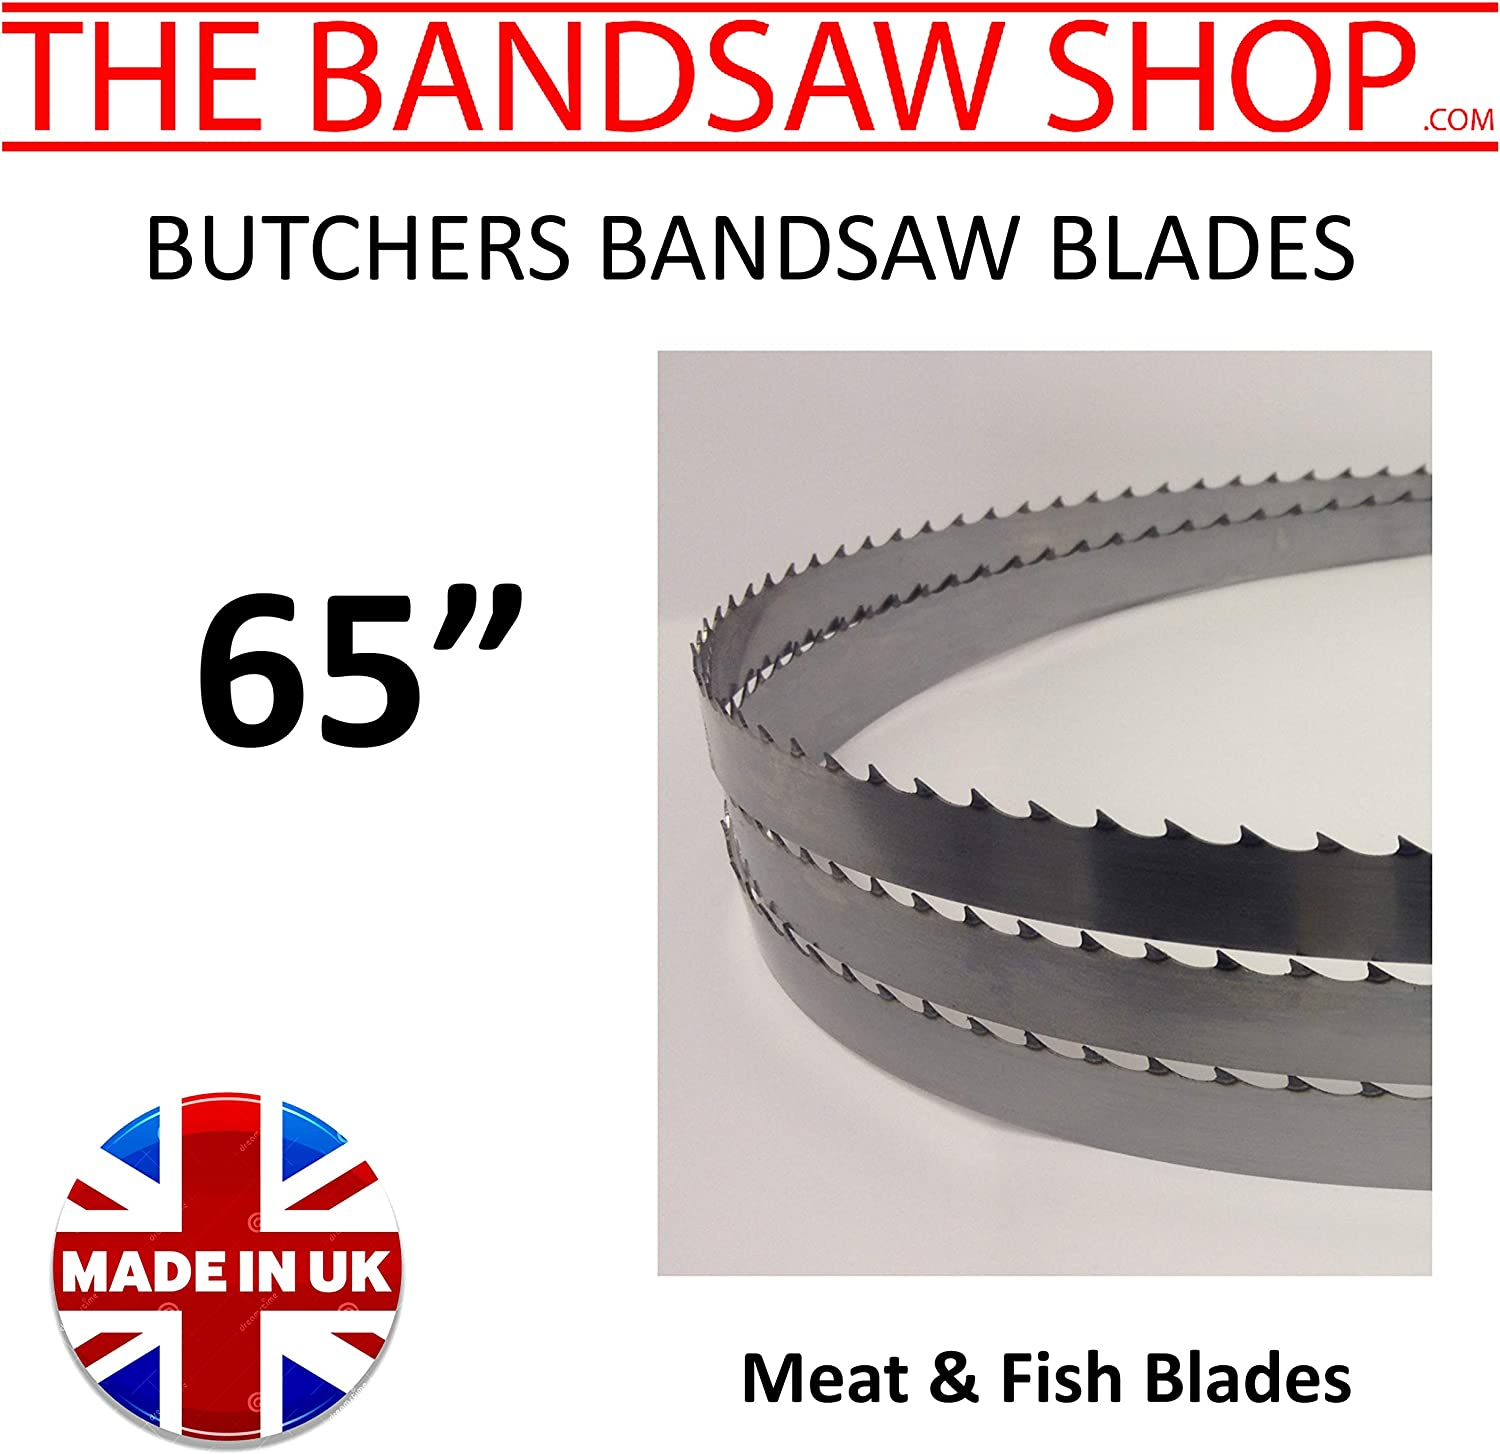 x 5//8 1651mm 10 Pack Butchers BANDSAW Blades 4 TPI for Cutting Meat /& Fish 1651mm 65 65